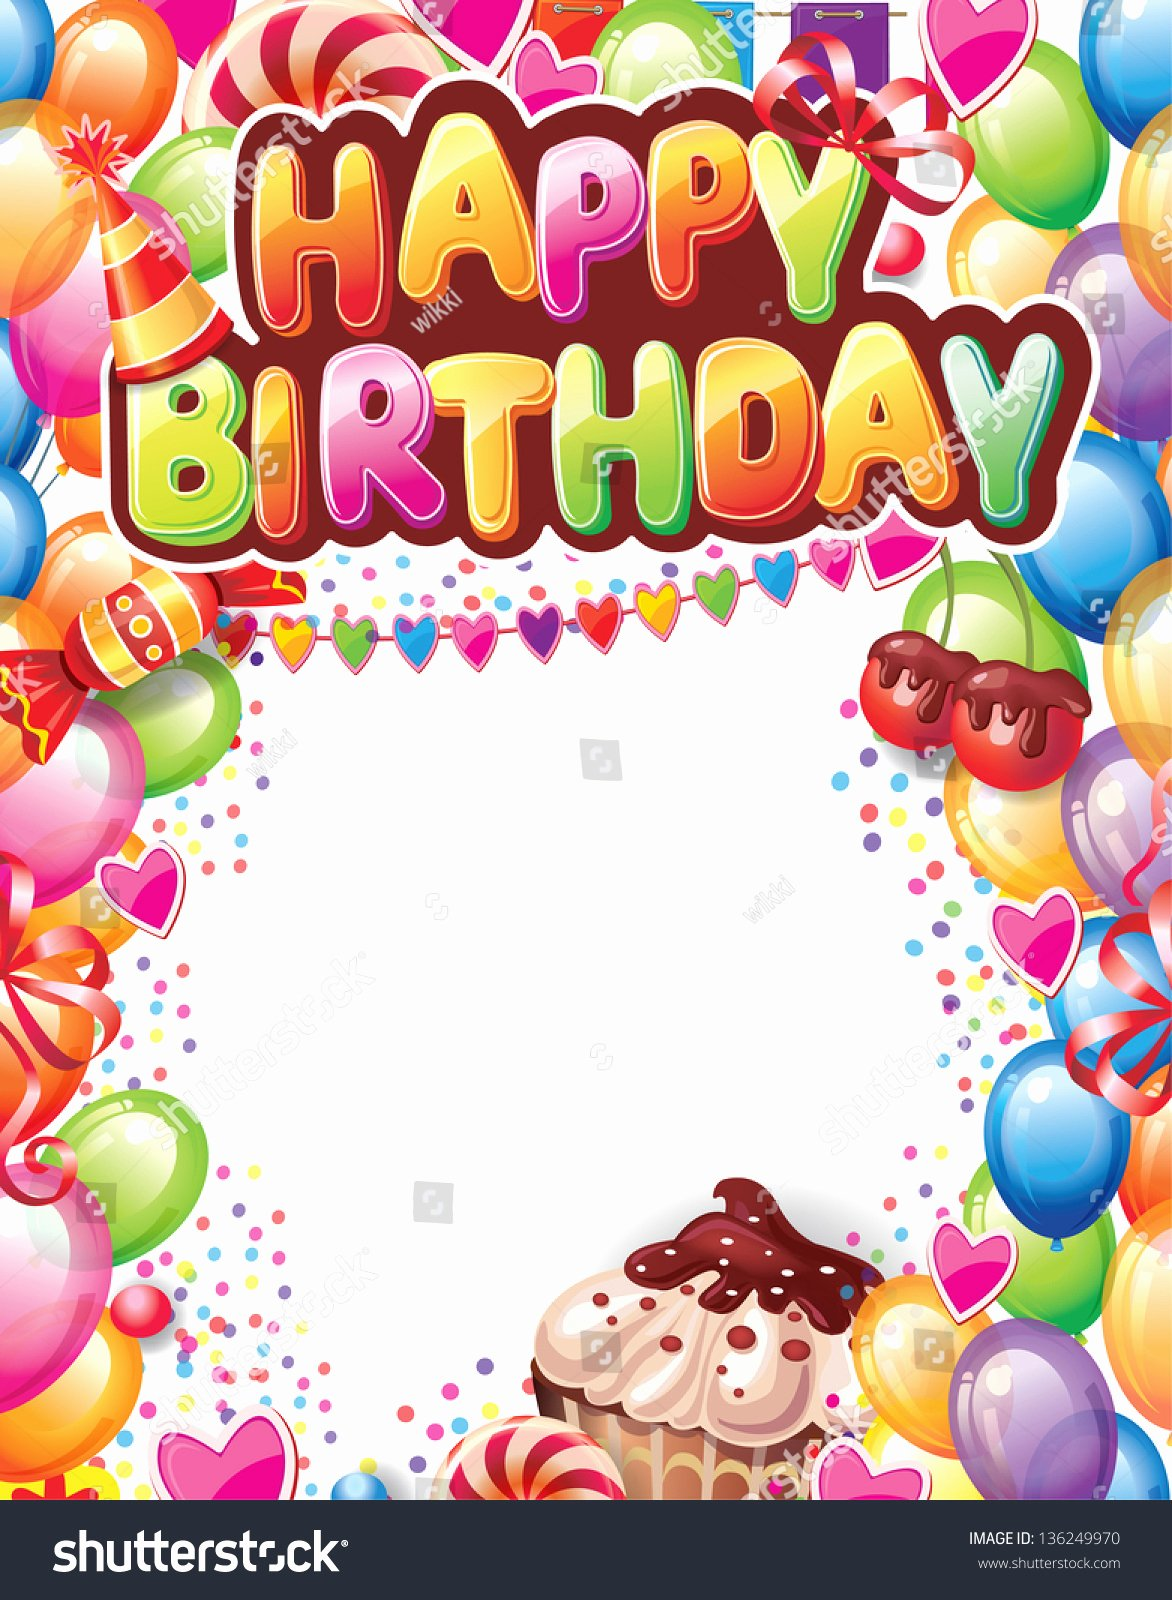 Happy Birthday Email Template Beautiful Template for Happy Birthday Card Stock Vector Illustration